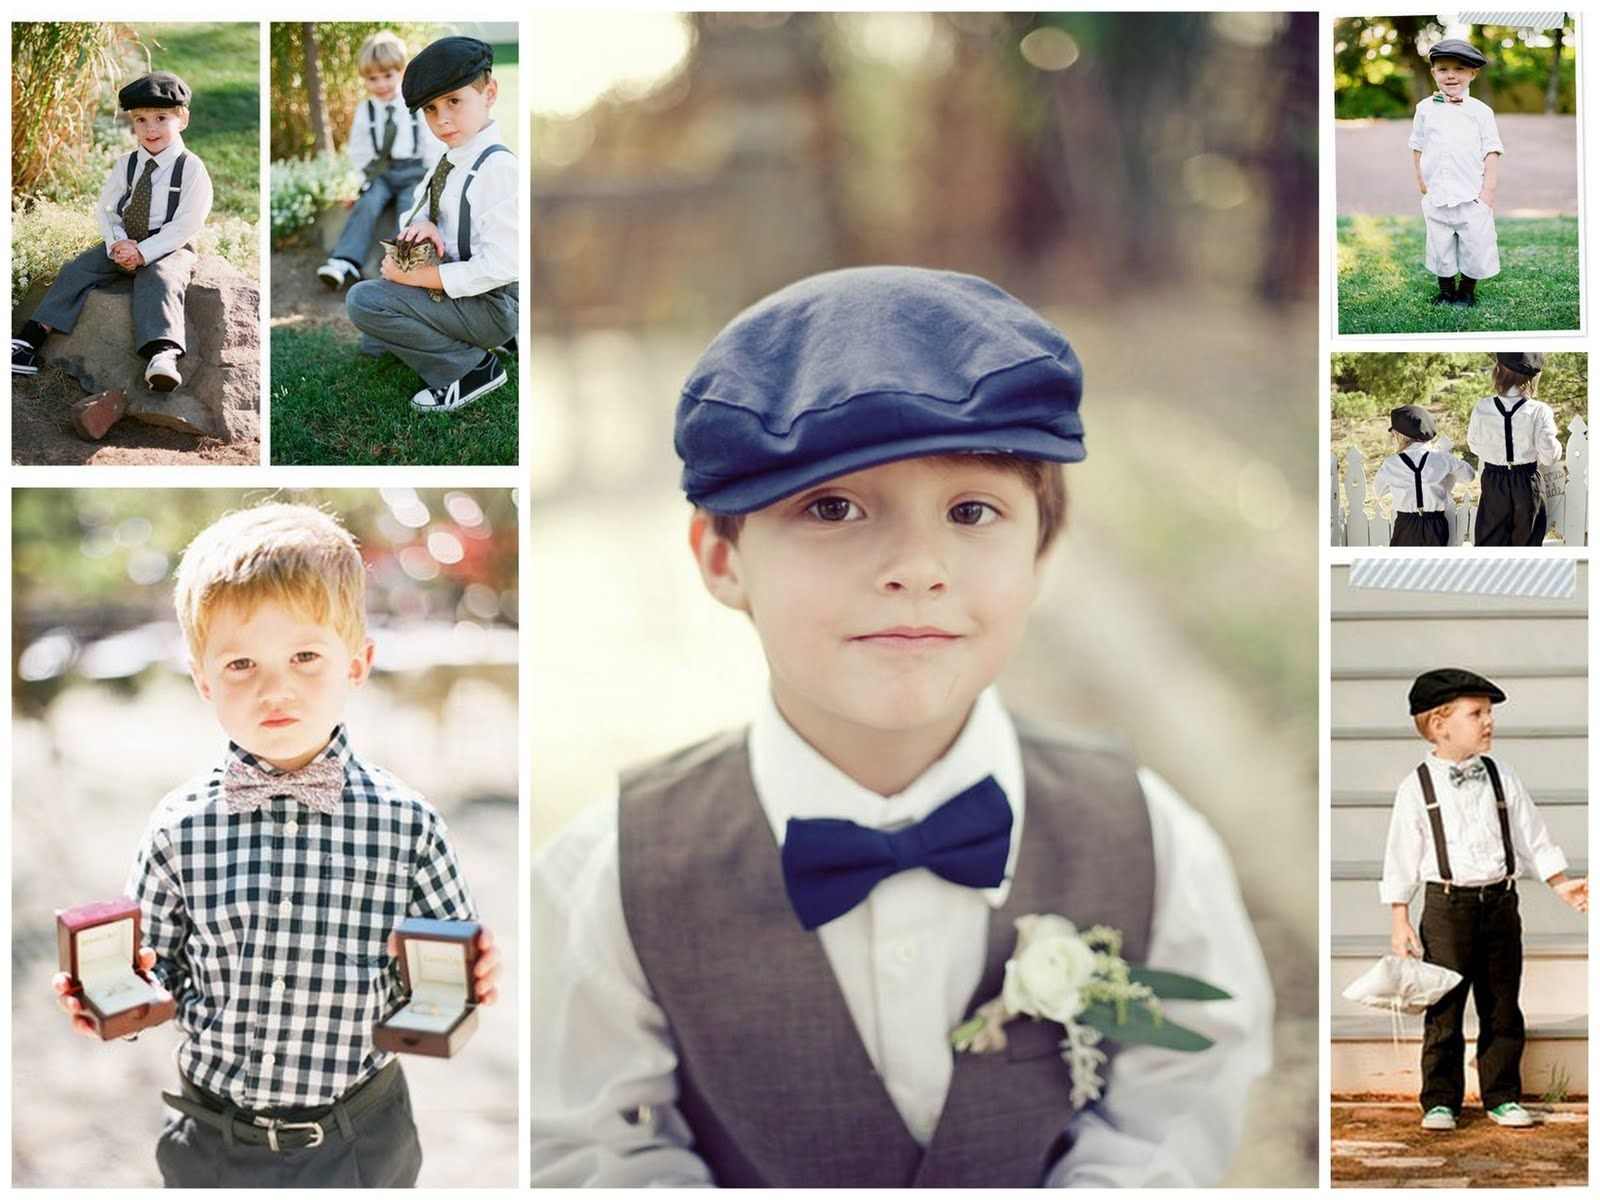 I really love the suspenders The vest and bow tie is cute too Visit